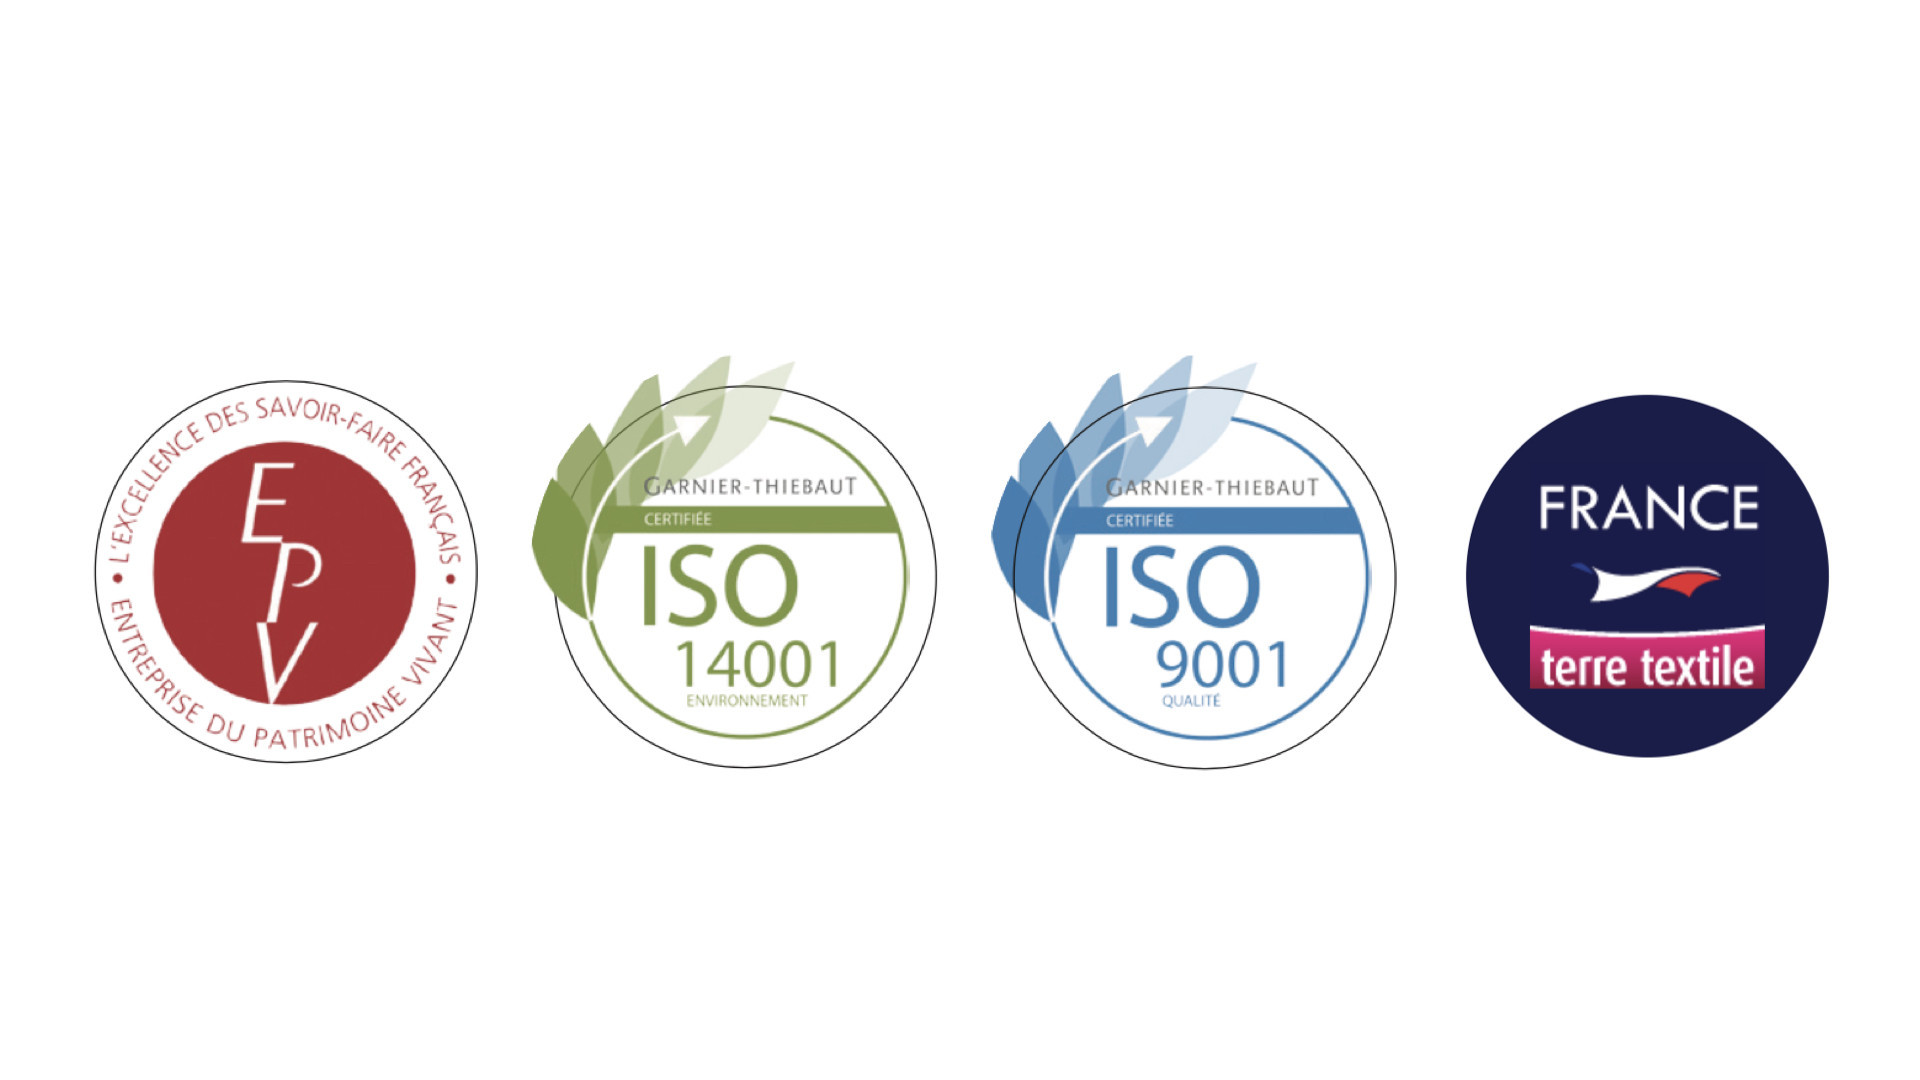 Labels Garnier-Thiebaut : EPV, ISO 14001, ISO 9001, France Terre Textile